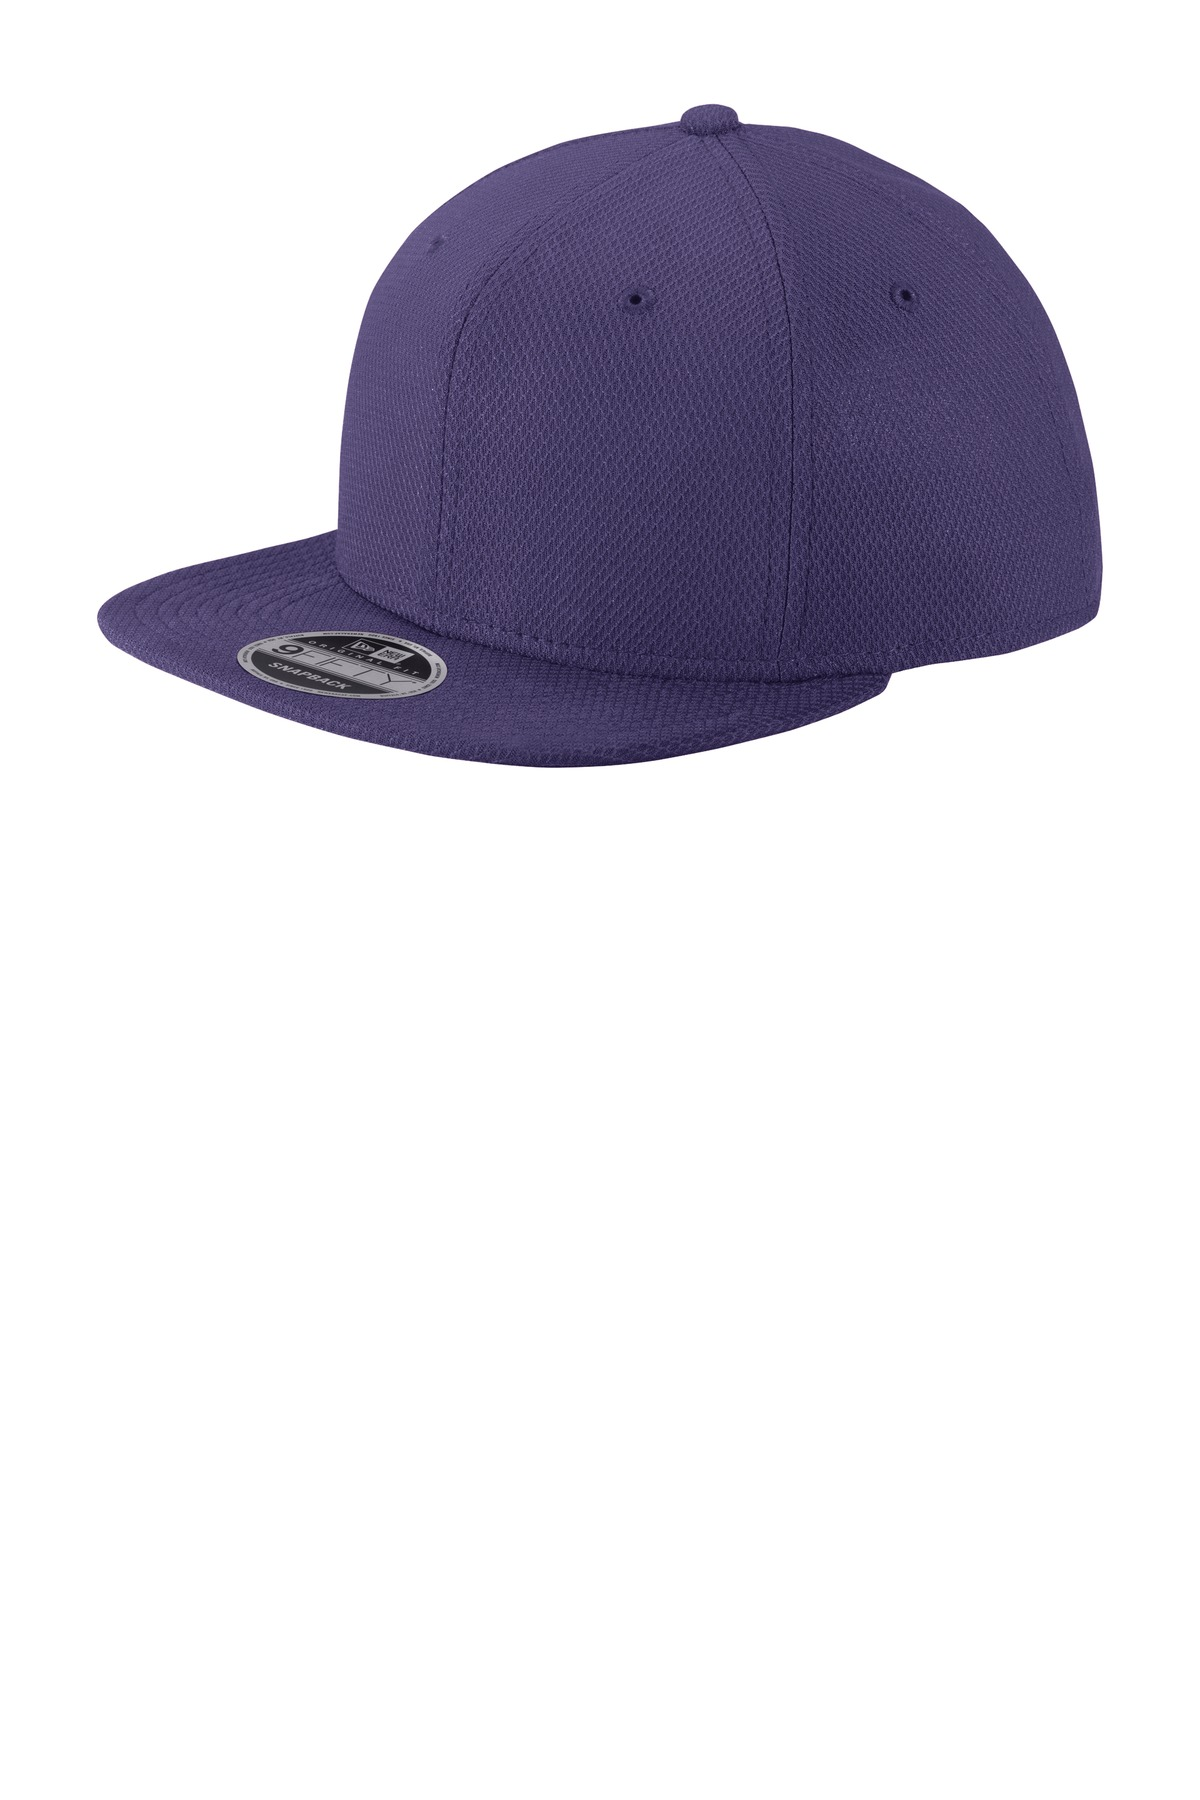 New Era  ®  Original Fit Diamond Era Flat Bill Snapback Cap. NE404 - Purple